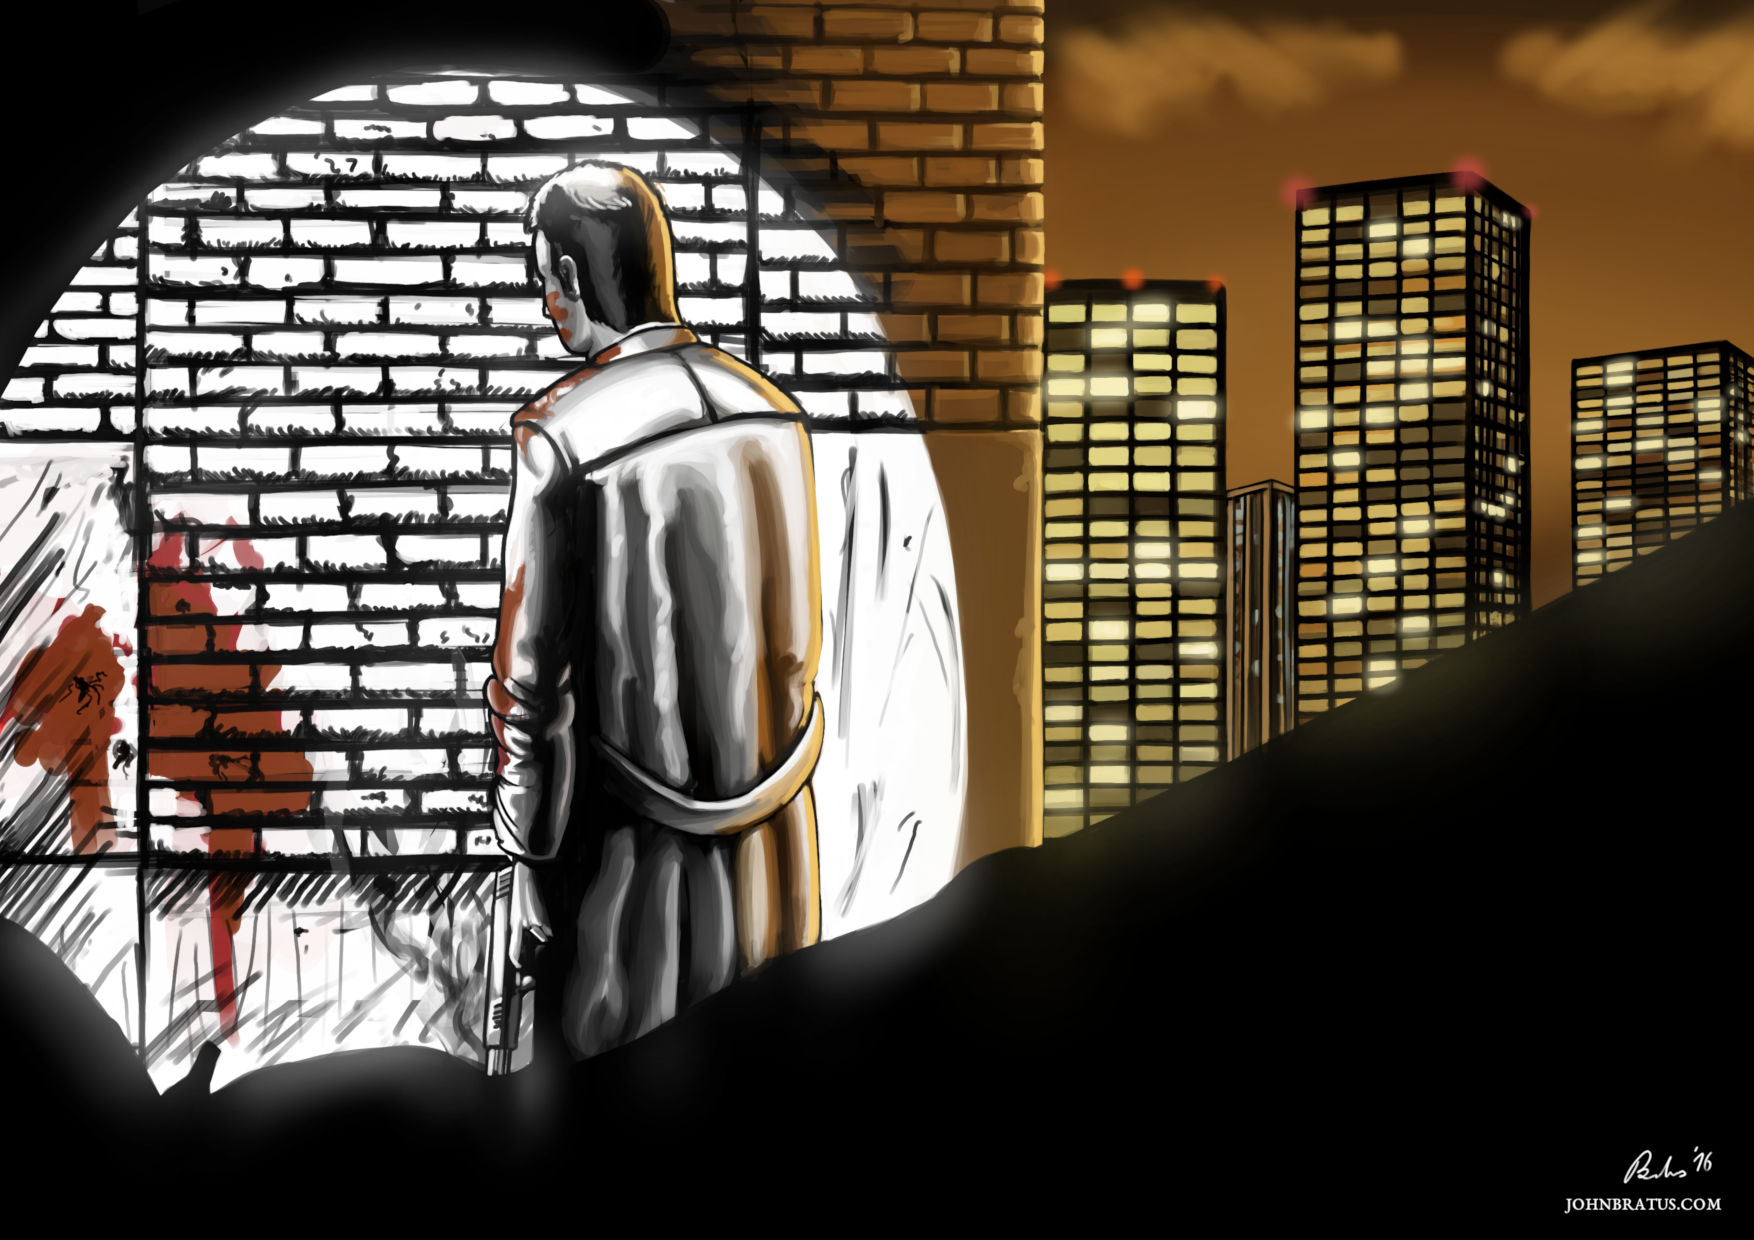 Neo-noir digital painting of a man standing in a back alley after committing a murder